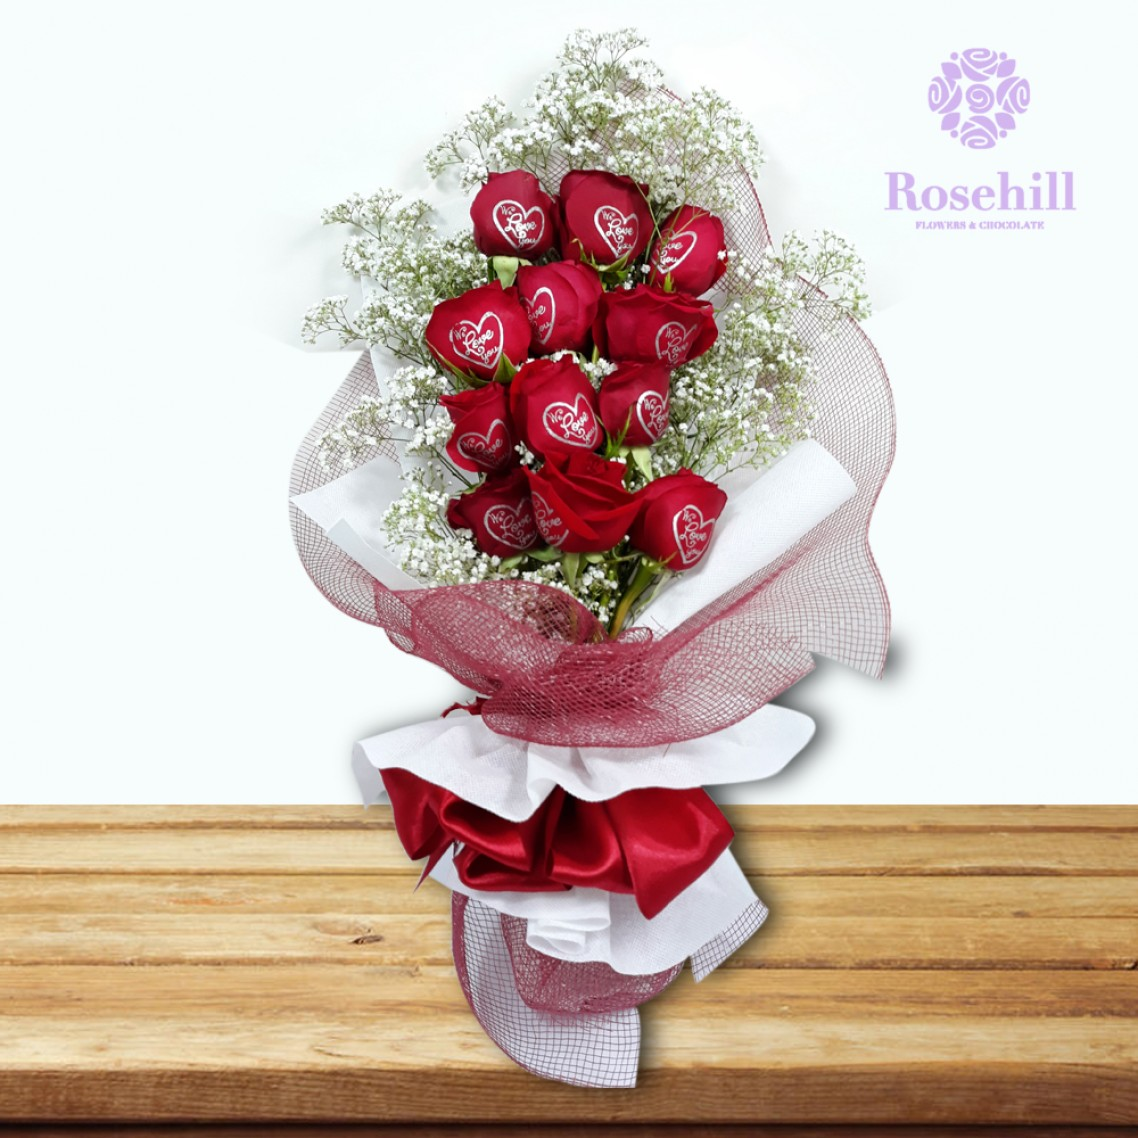 1524662810-h-250-_Rosehill's We Love You Bouquet with Baby's Breath- Red.jpg